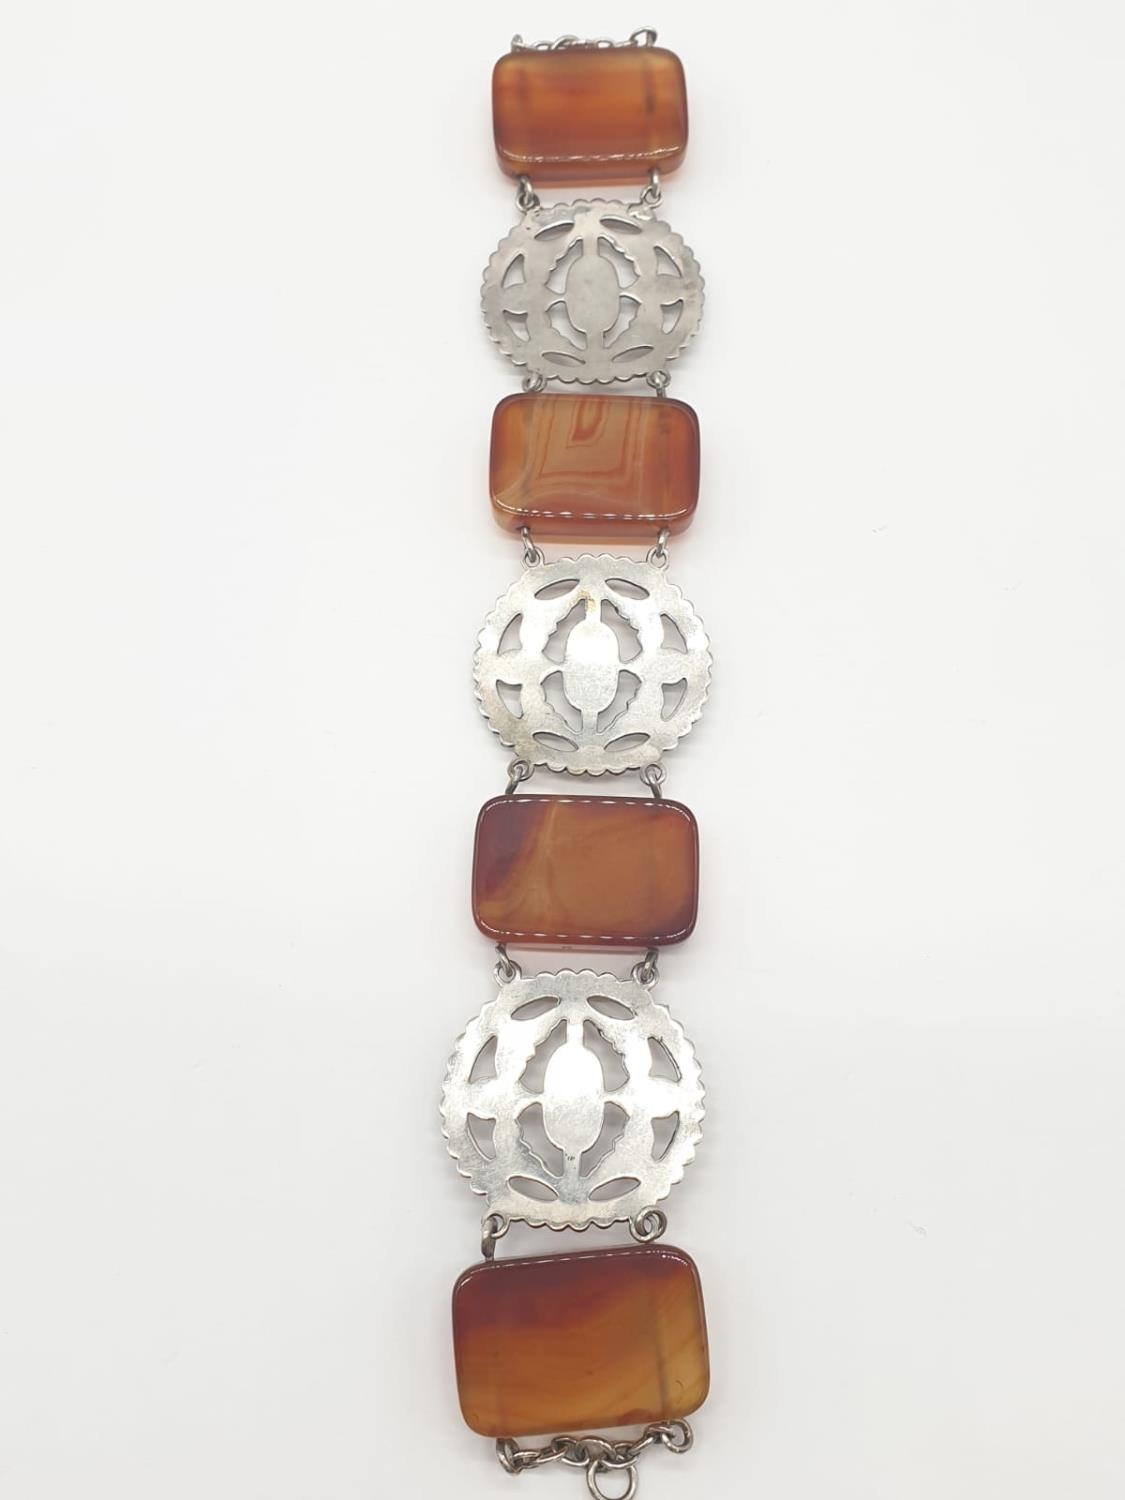 Large Silver agate Scottish bracelet, weight 70g and 22cm long and 3cm wide - Image 4 of 5